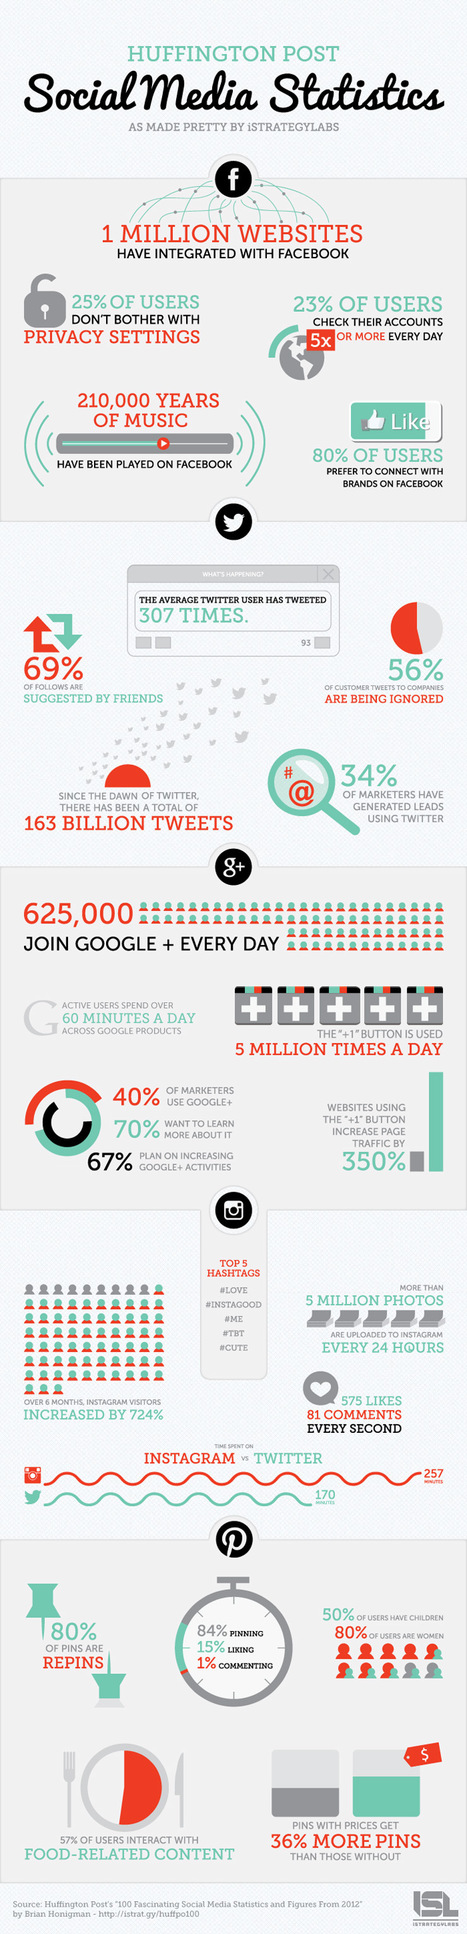 Social Media Statistics: Huffington Post Infographic | Understanding Social Media | Scoop.it